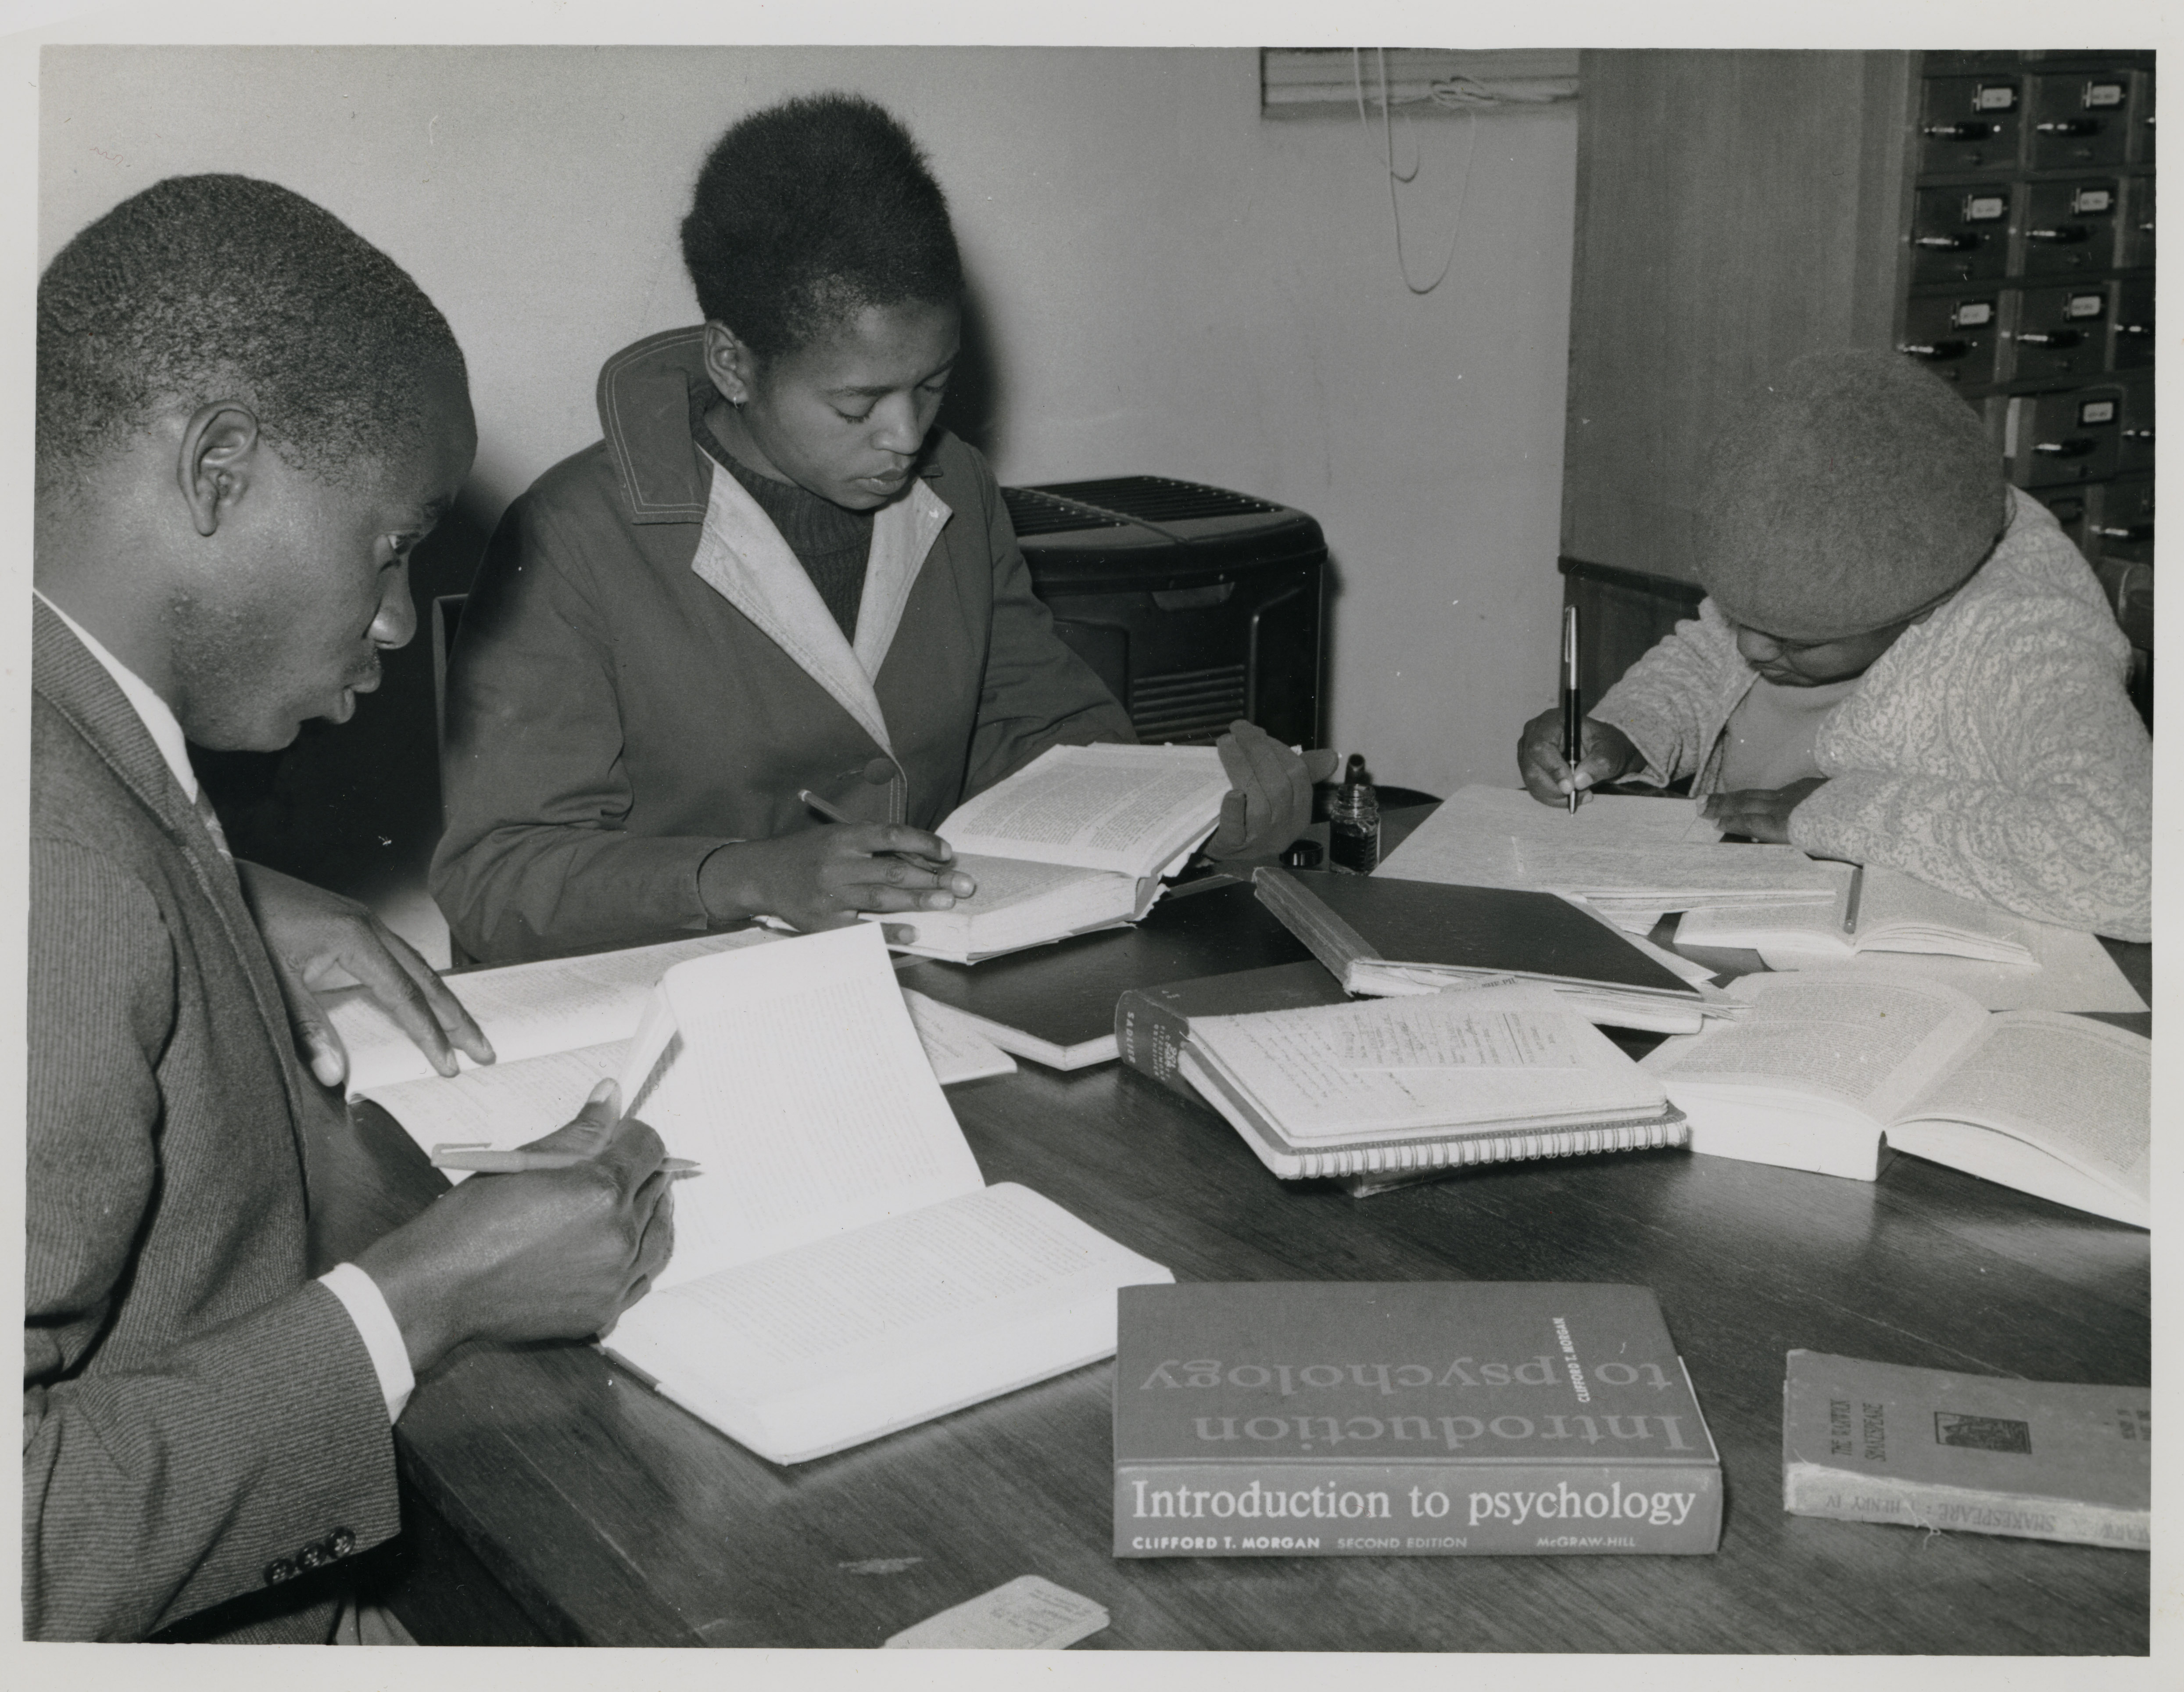 Africa-America Institute Records image